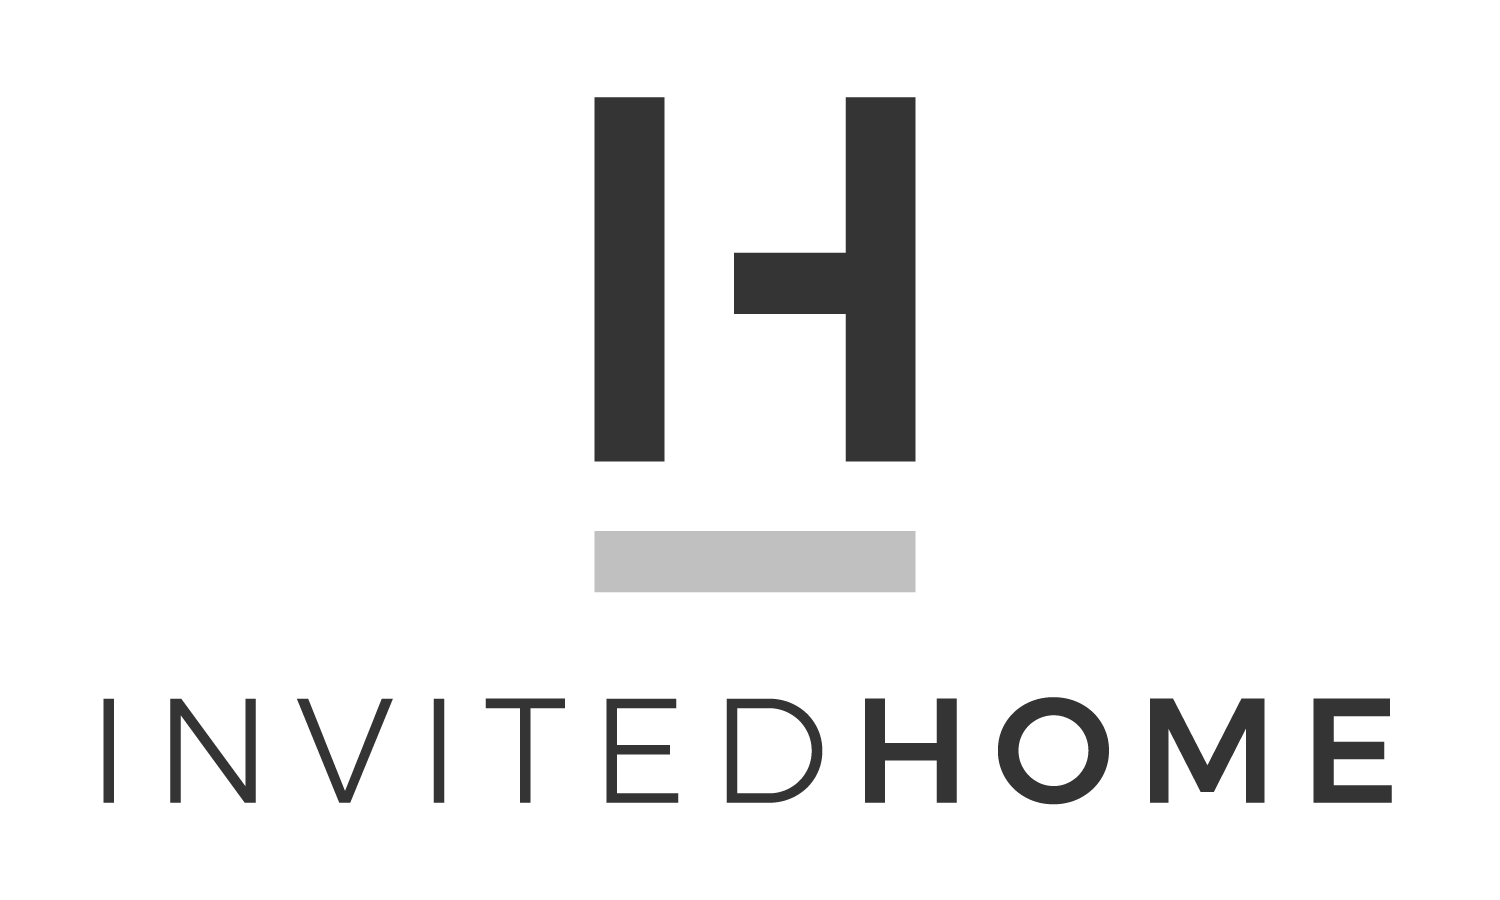 InvitedHome-logo.png